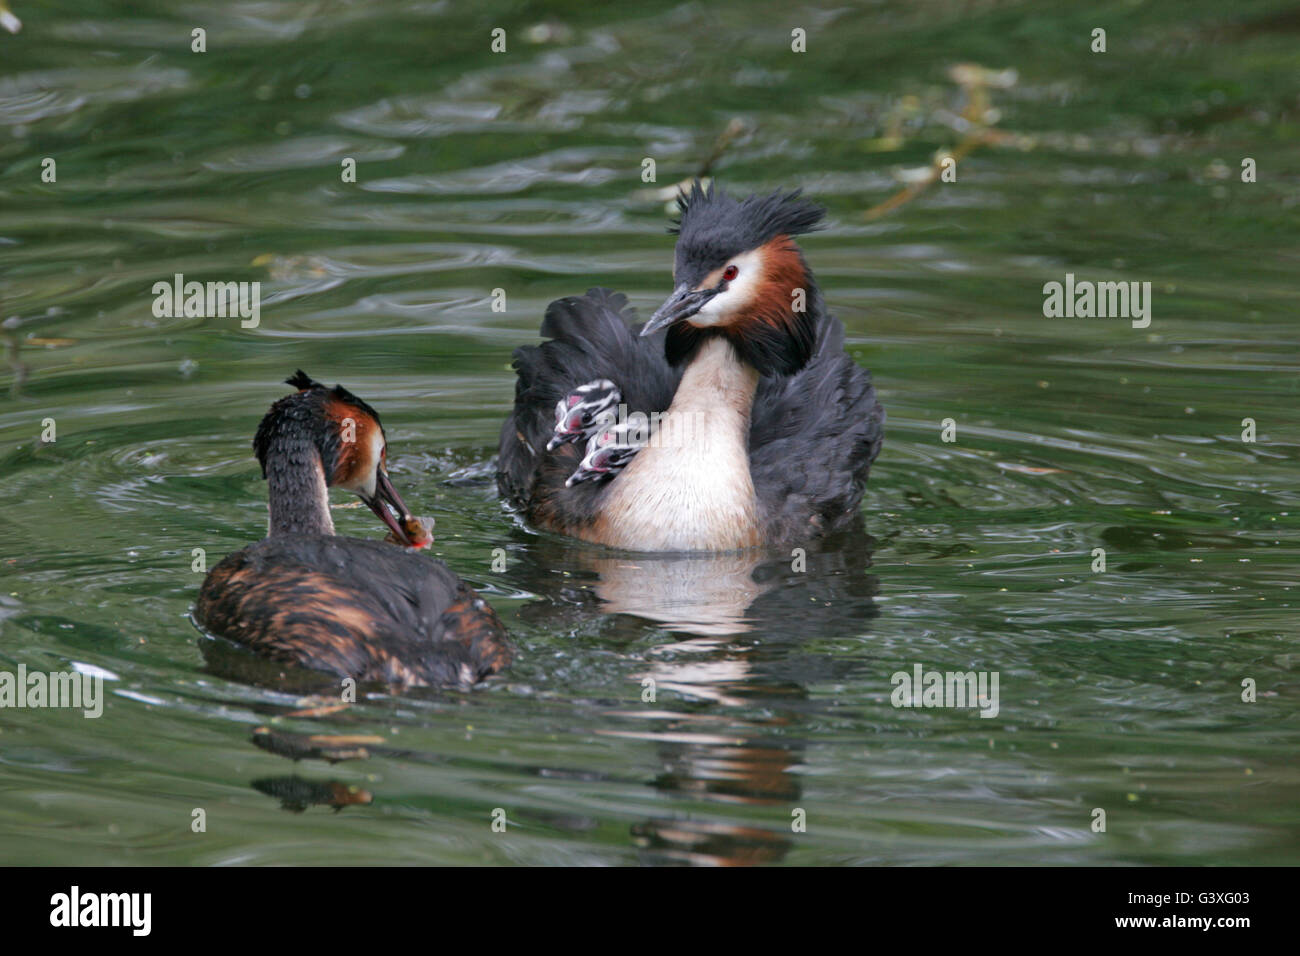 Great-crested Grebe, Podiceps cristatus, female bringing fish to young on back of male. Taken May. Lea Valley, Essex, - Stock Image